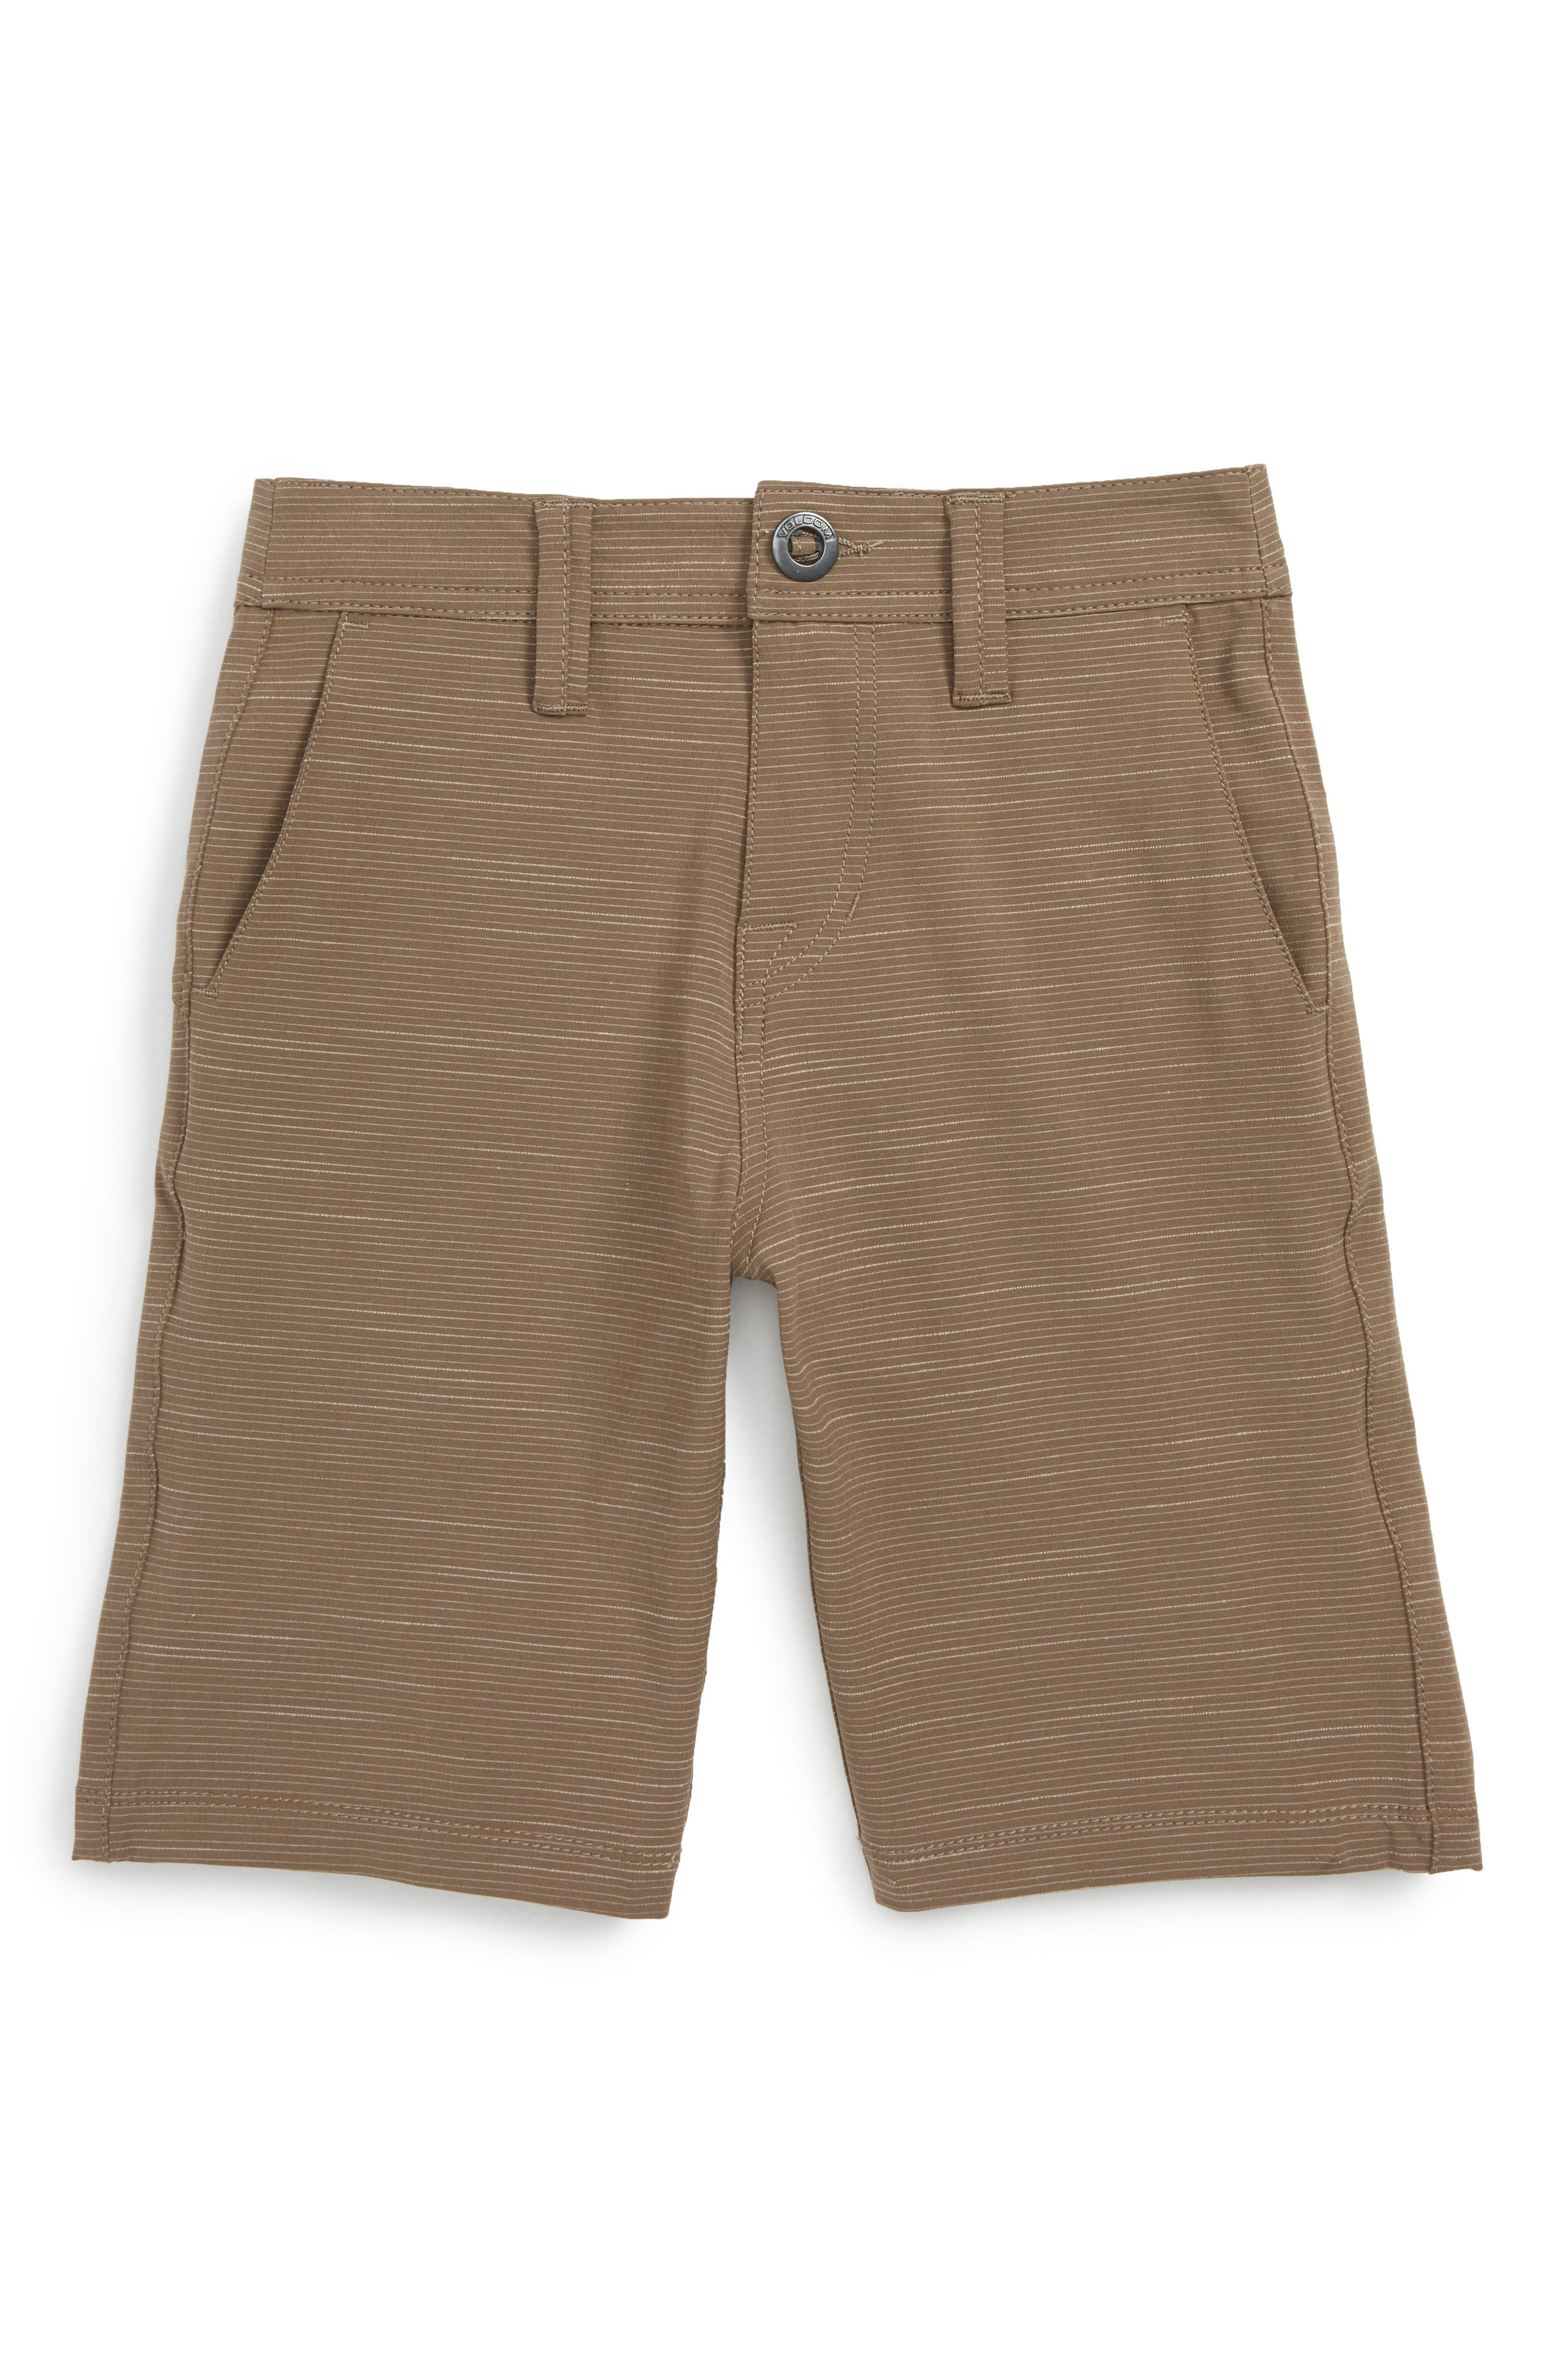 Surf N' Turf Hybrid Shorts,                         Main,                         color, Mushroom